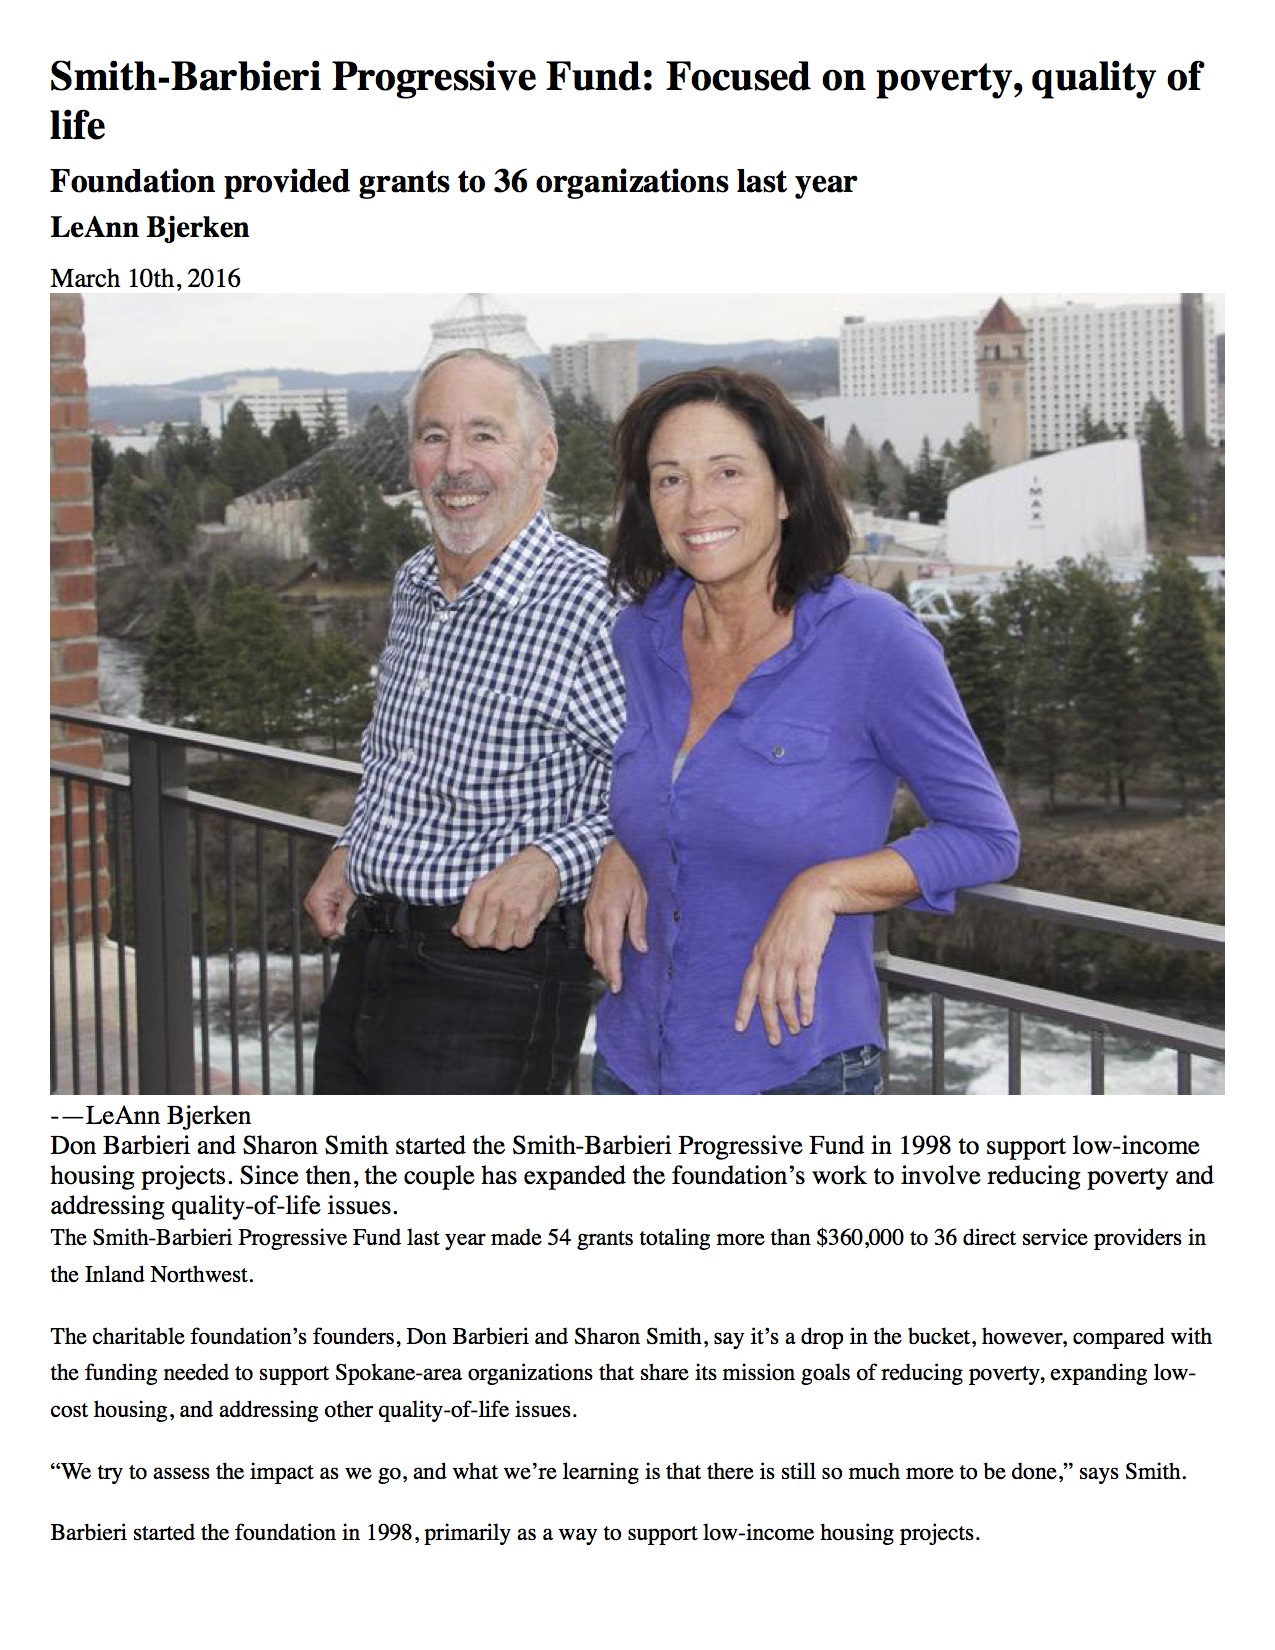 Smith-Barbieri Progressive Fund: Focused on poverty, quality of life > Spokane Journal of Business